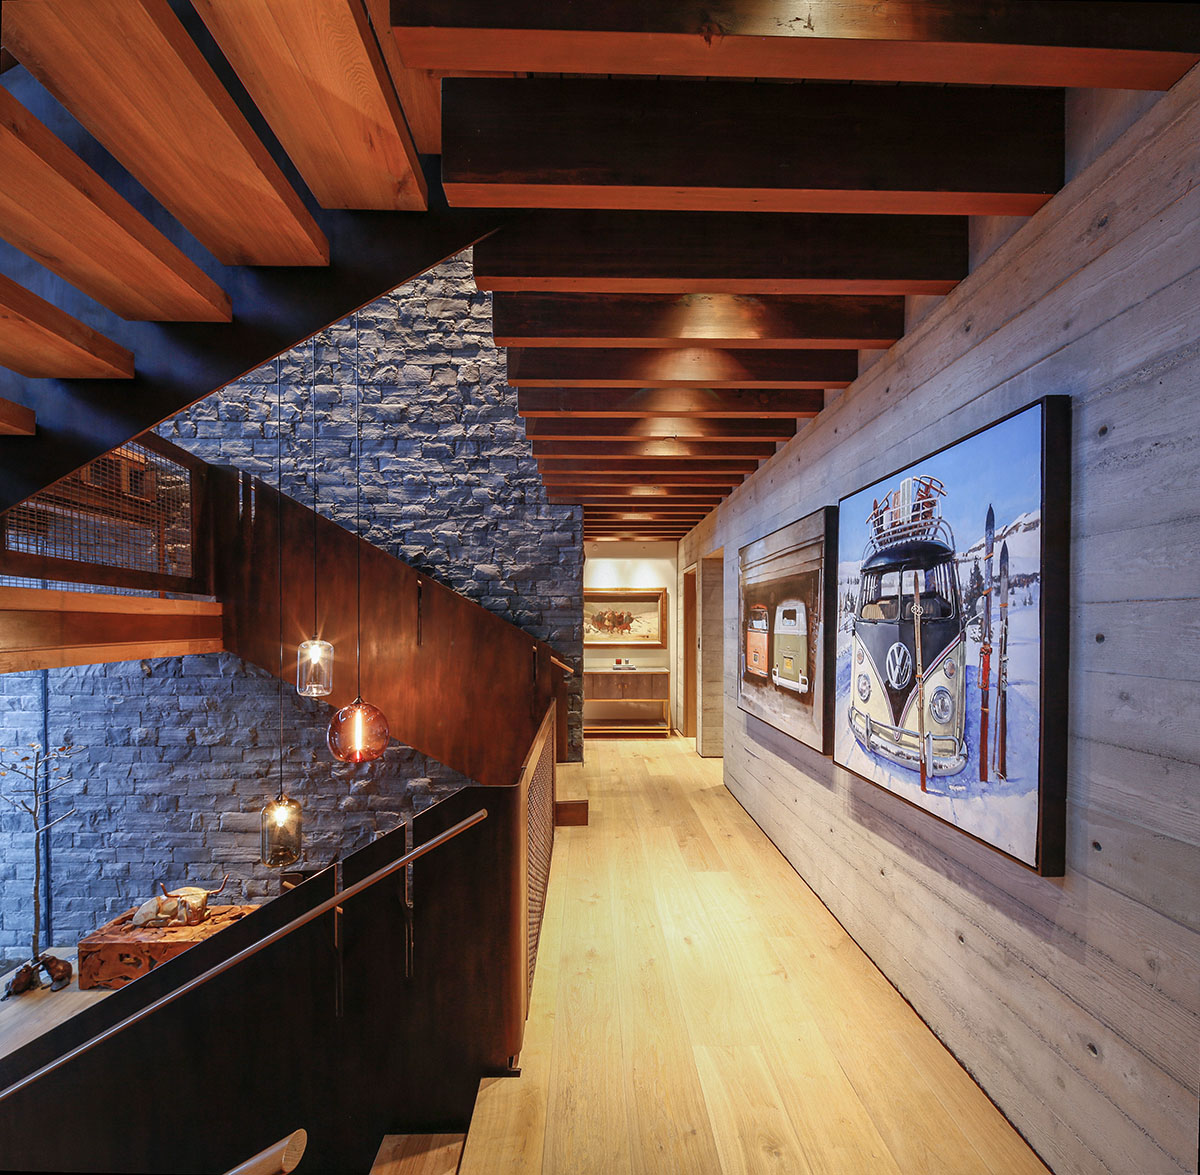 Staircase Pendant Lighting Adds Modern Charm To Rustic